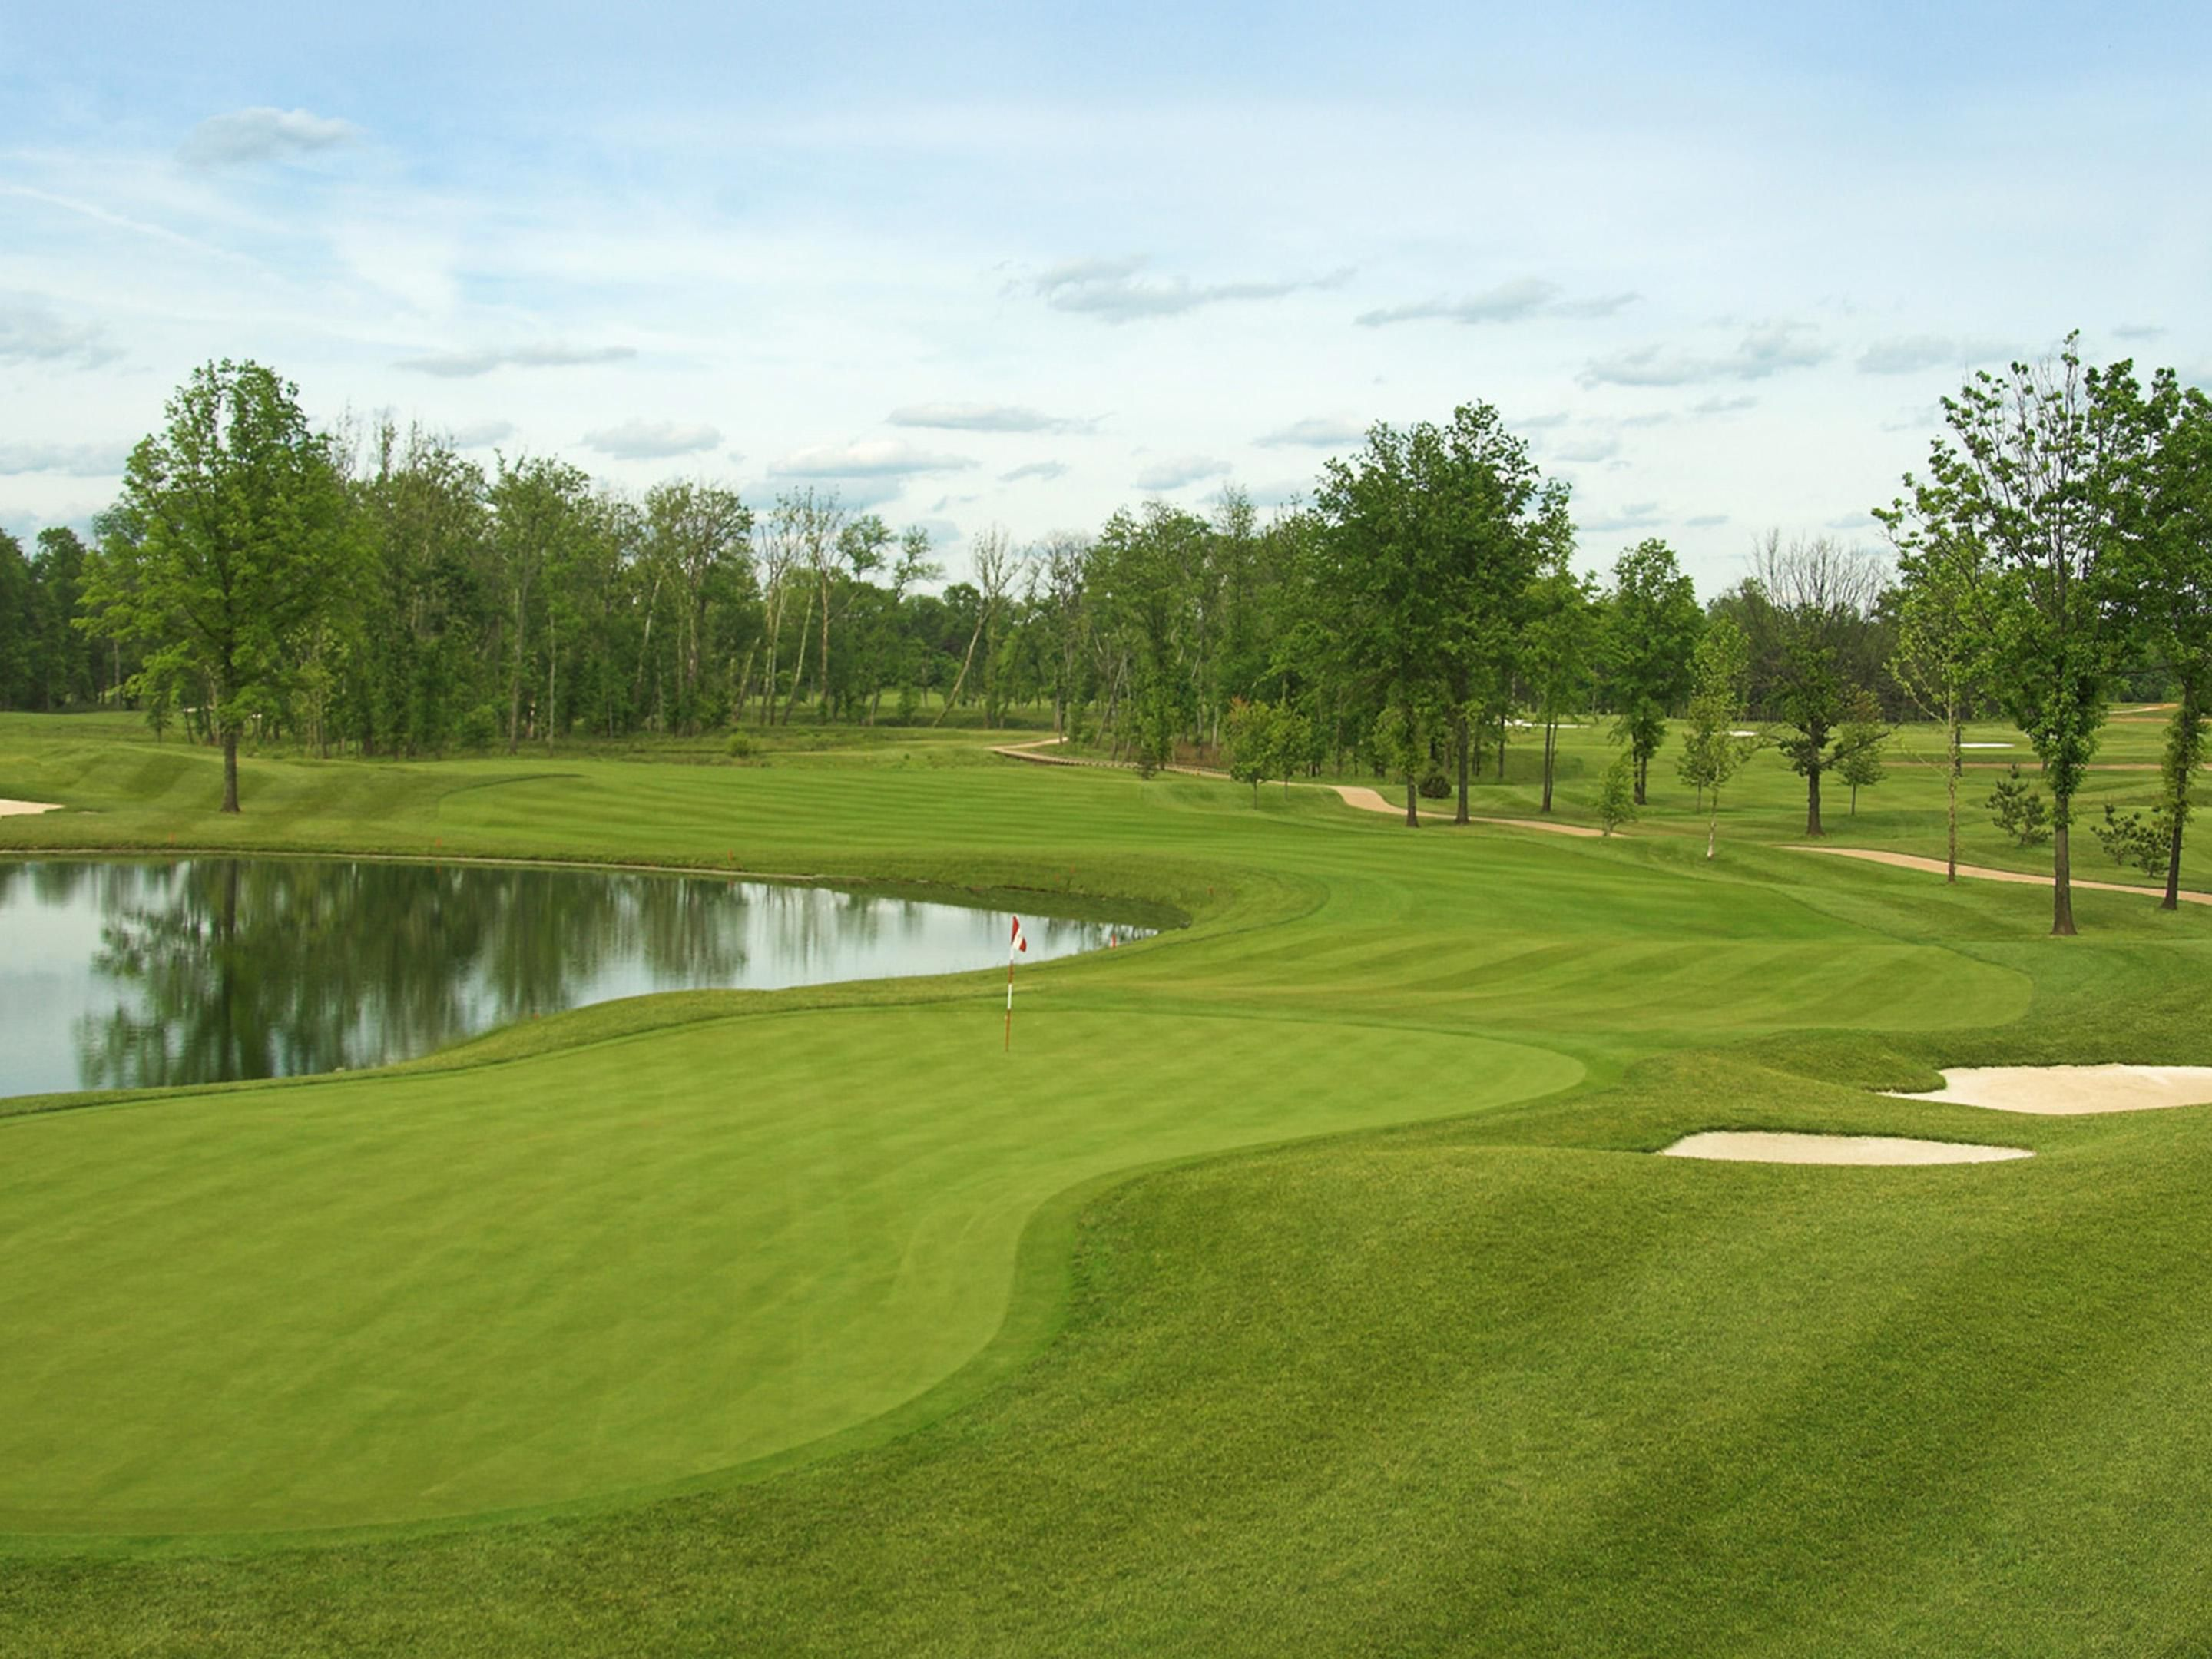 Holiday Inn Dulles is located near several beautiful golf courses